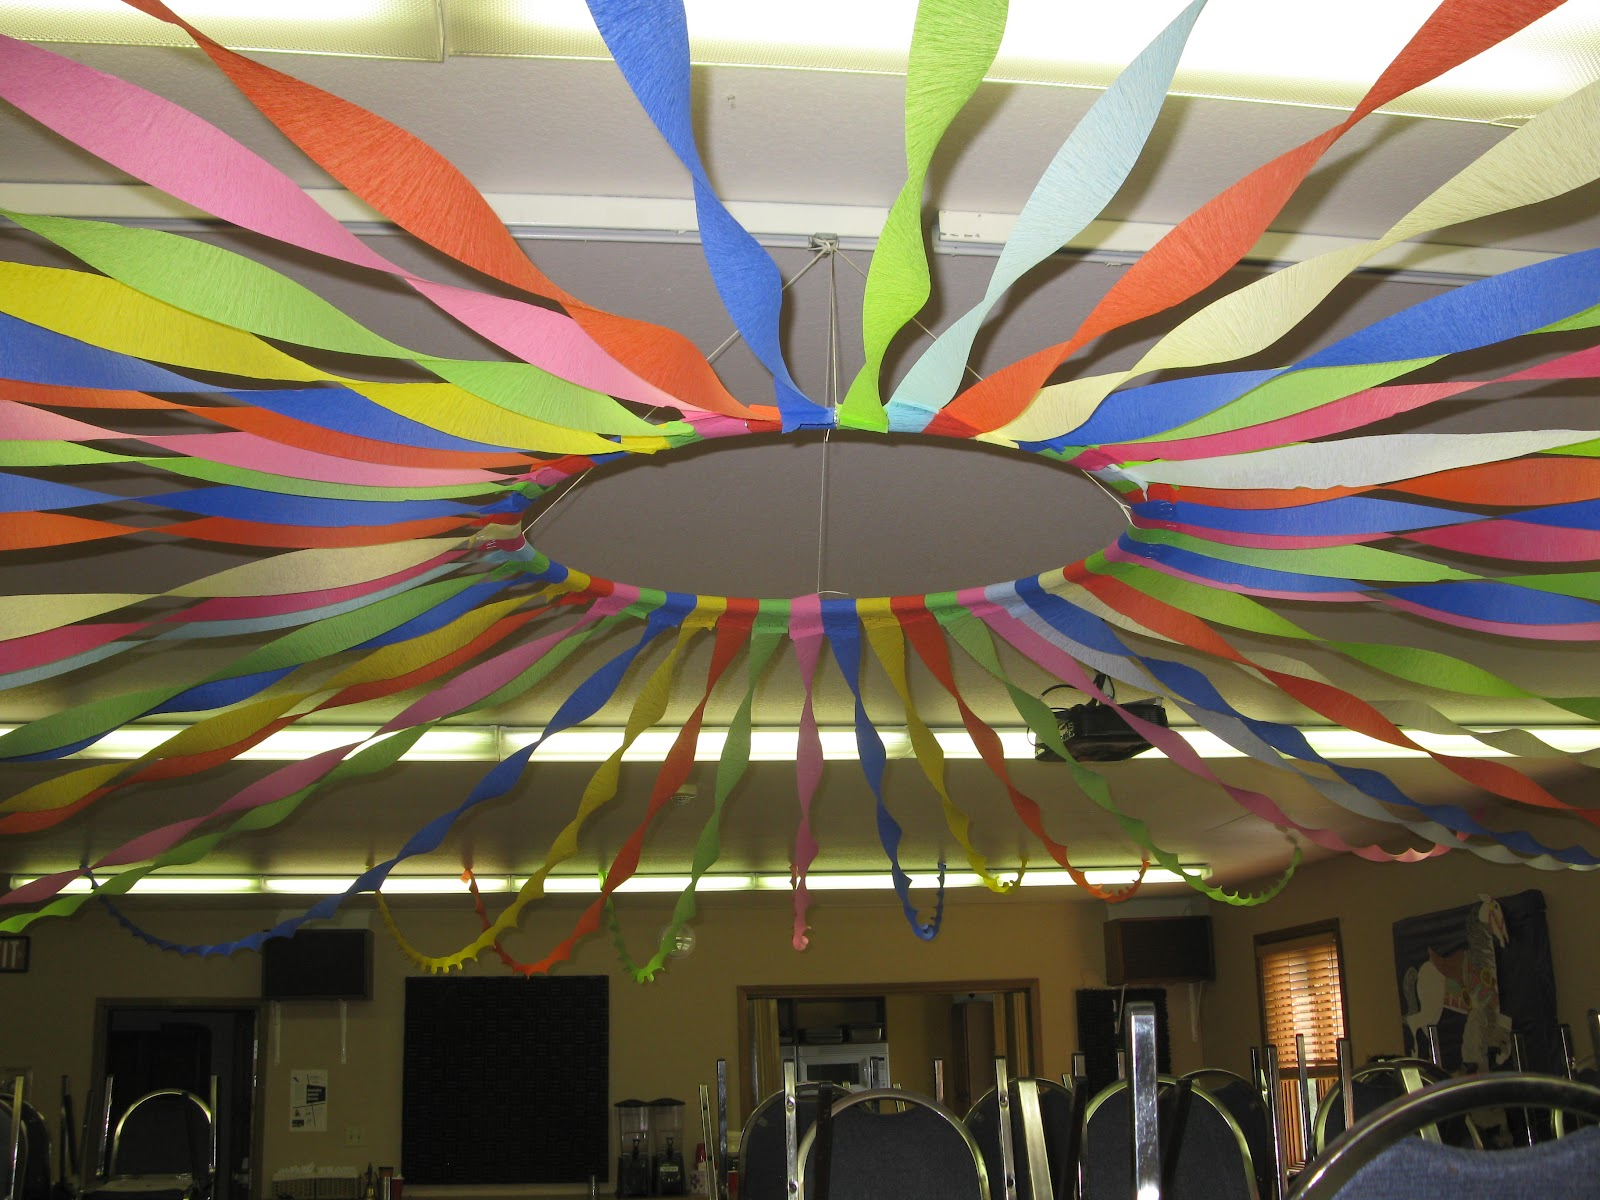 Pak art alaska vbs decorations for Ceiling streamers